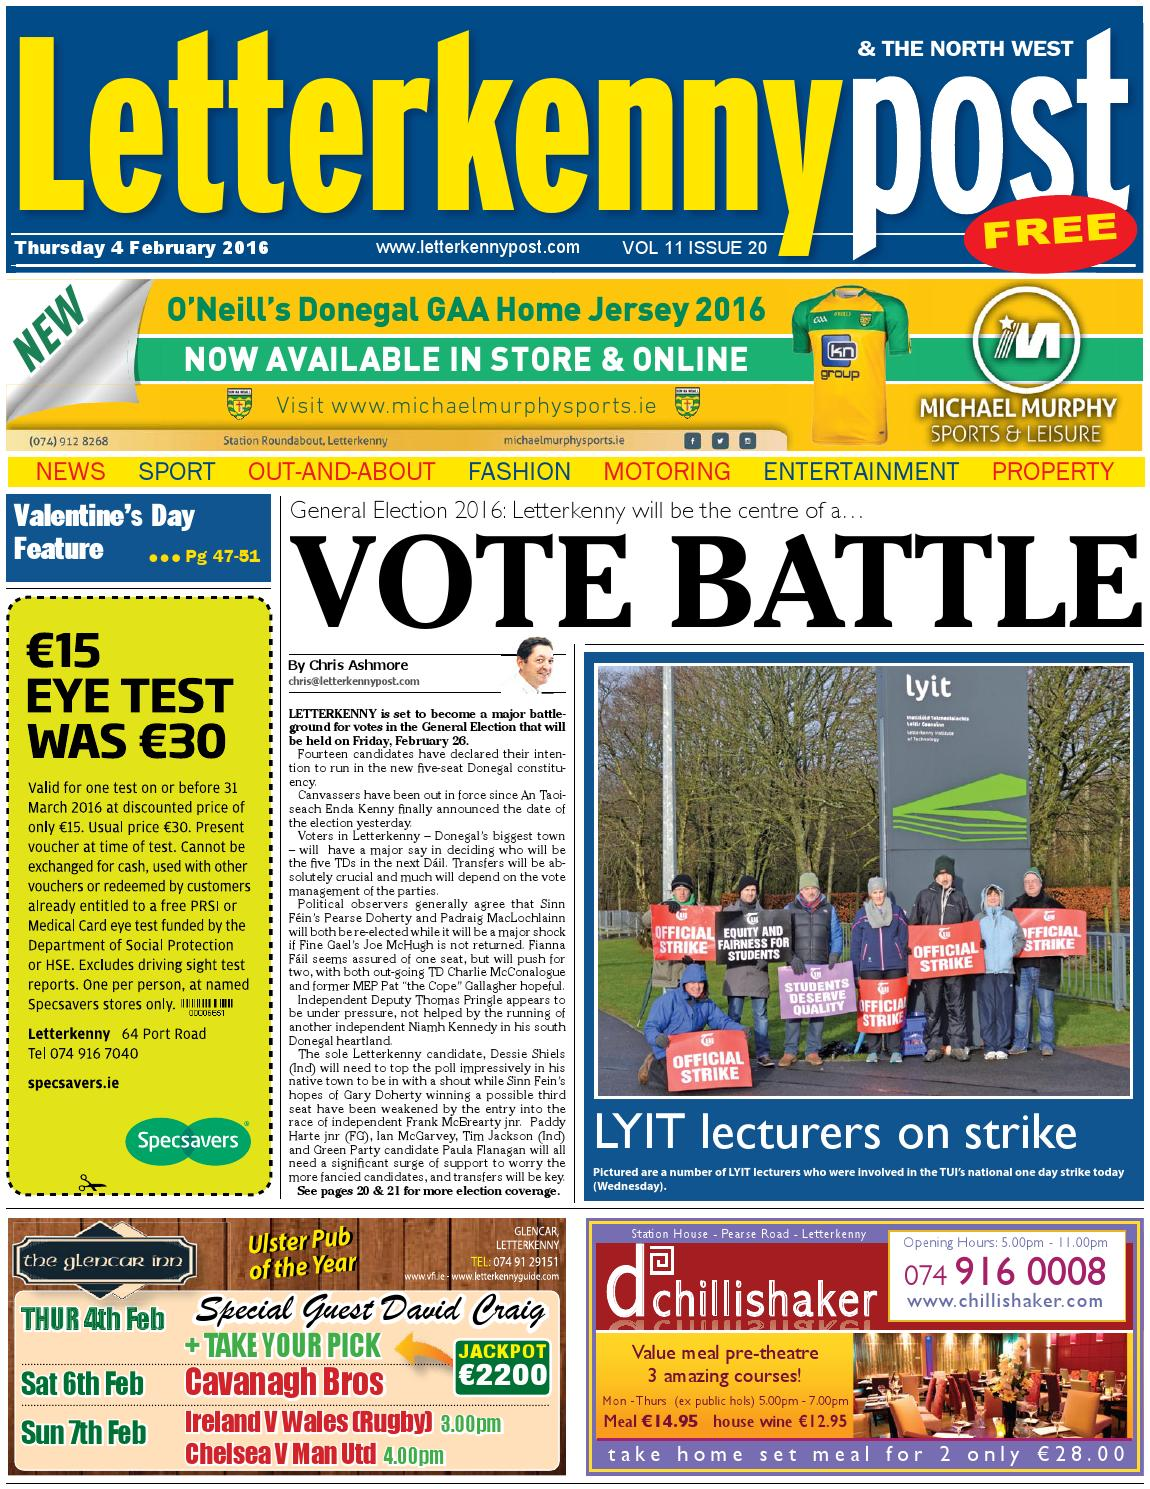 Letterkenny Post 4 02 16 By River Media Newspapers Issuu